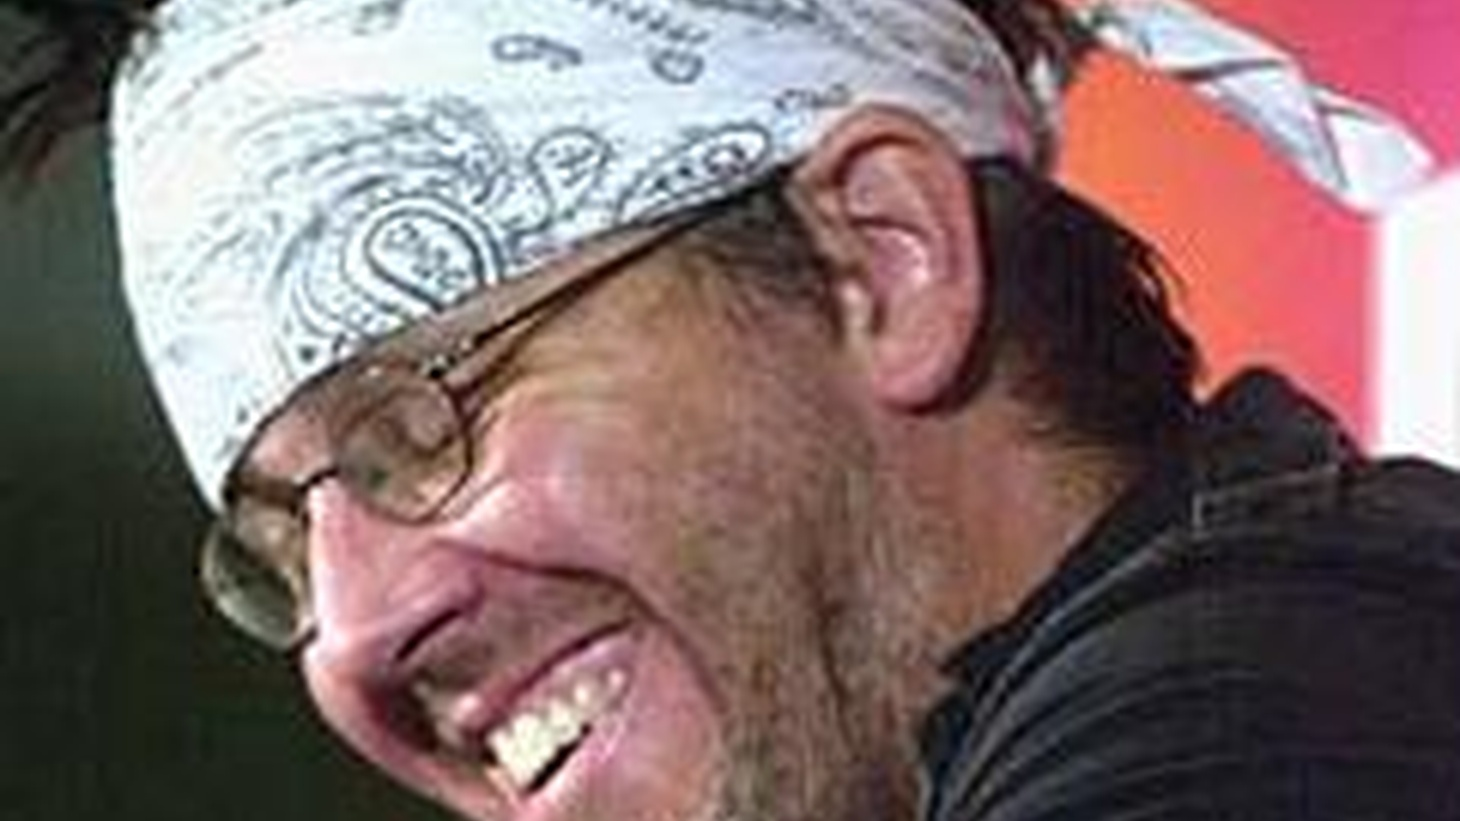 On a luxury cruise or at a state fair, David Foster Wallace is an ideal reporter on the disintegration of the Actual.